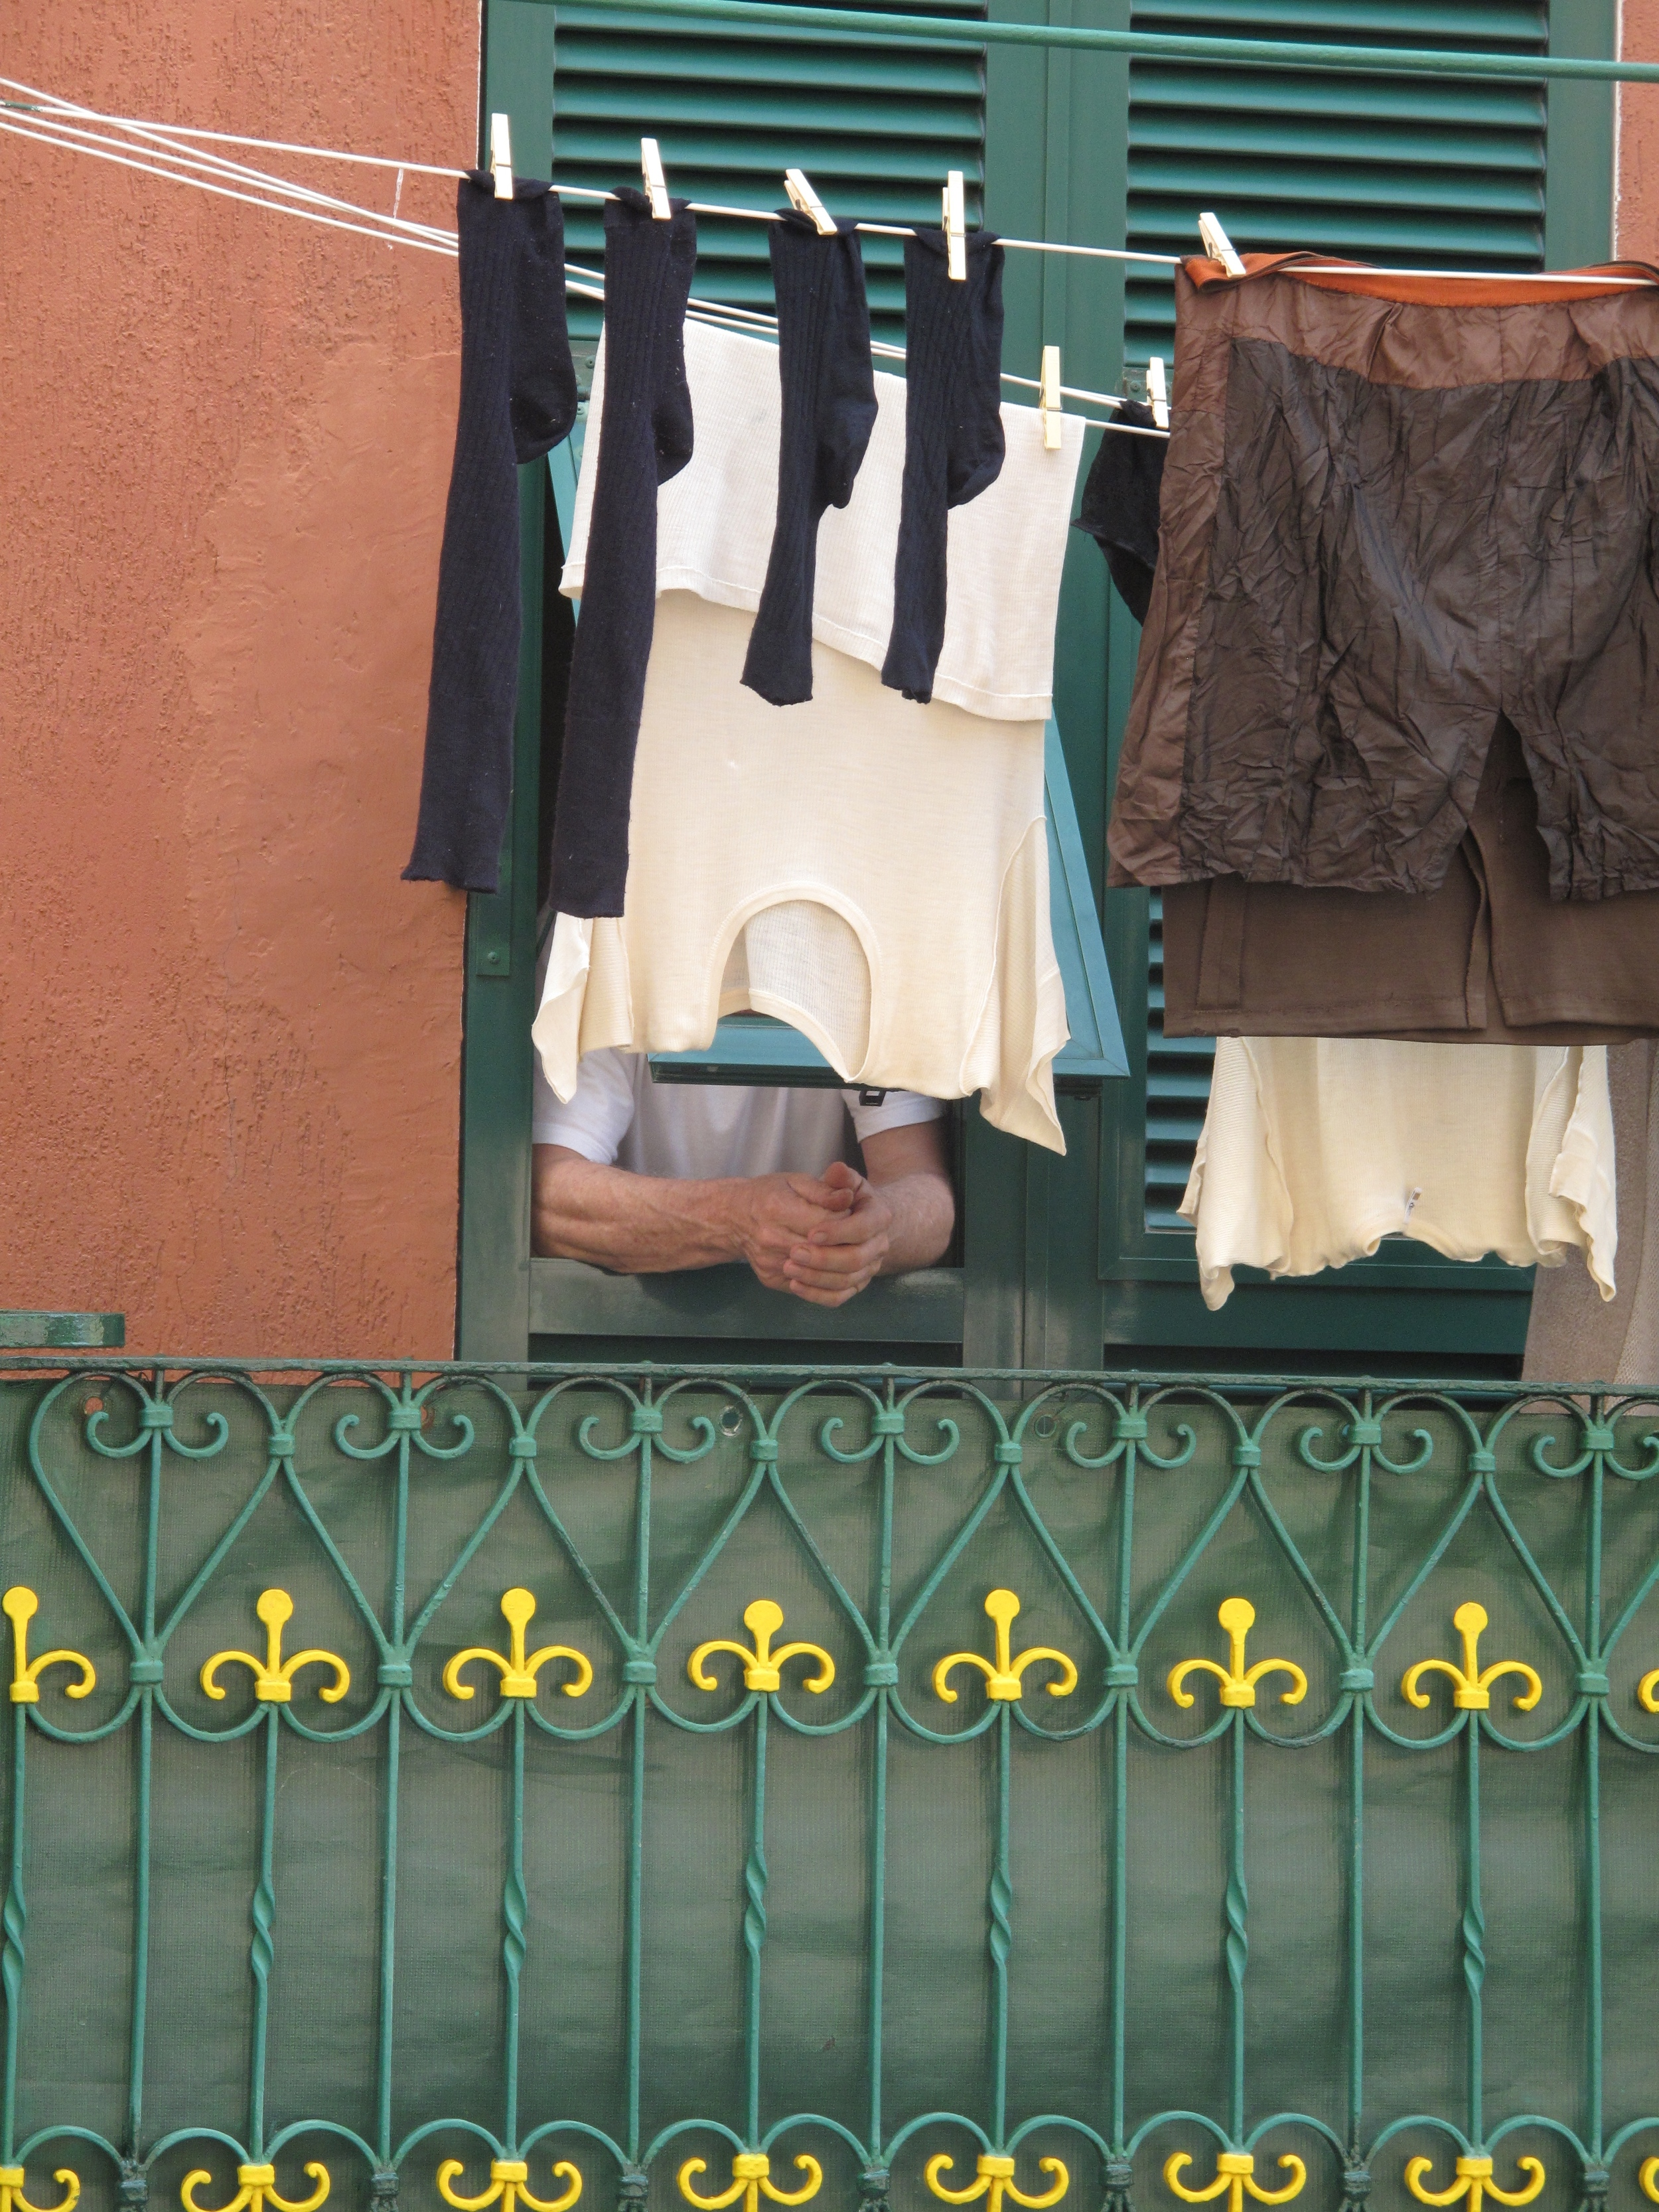 An old italian man peering out his window and watching the street behind some washing